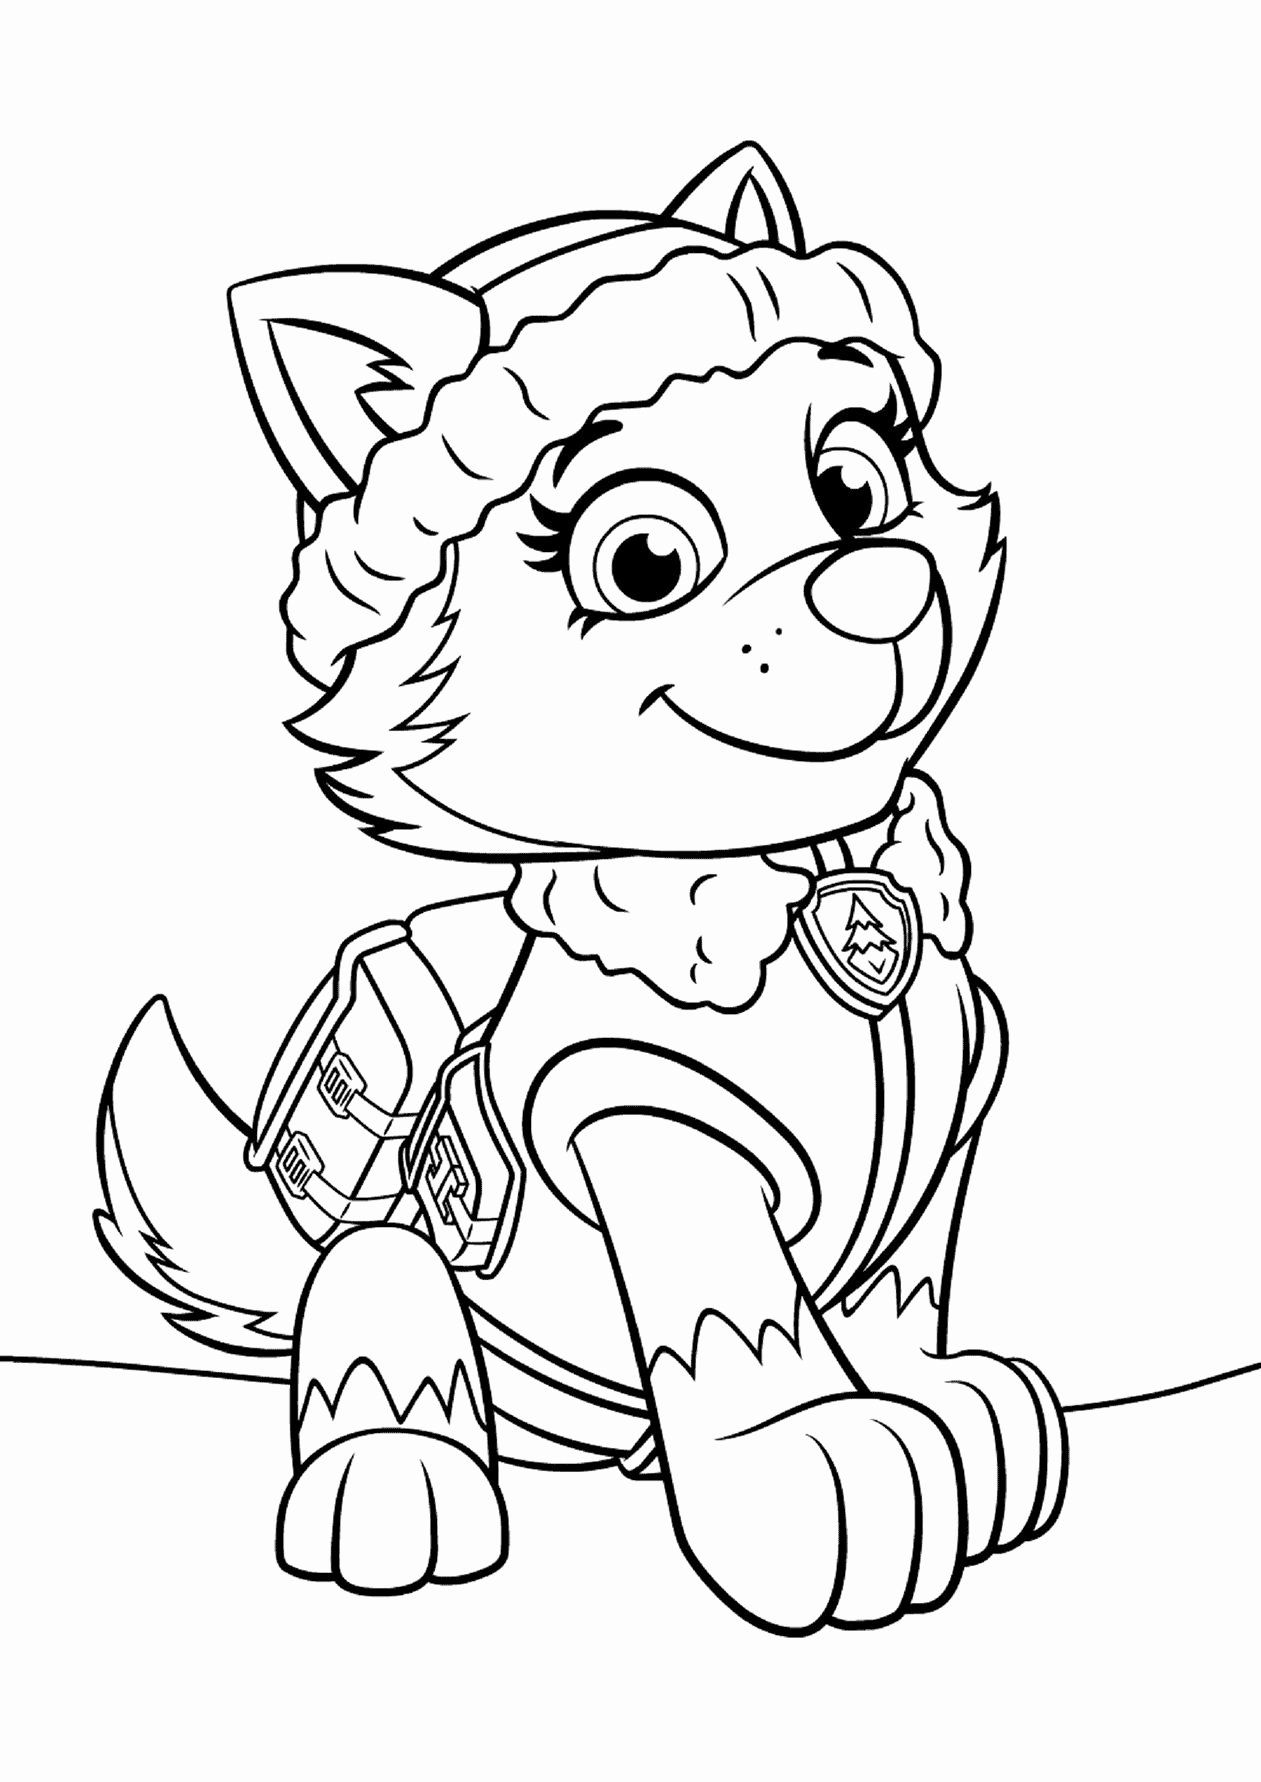 Paw Patrol Everest Coloring Page Inspirational Aw Patrol Kleurplaat Everest Kinderen Pintere Paw Patrol Coloring Pages Paw Patrol Coloring Horse Coloring Pages